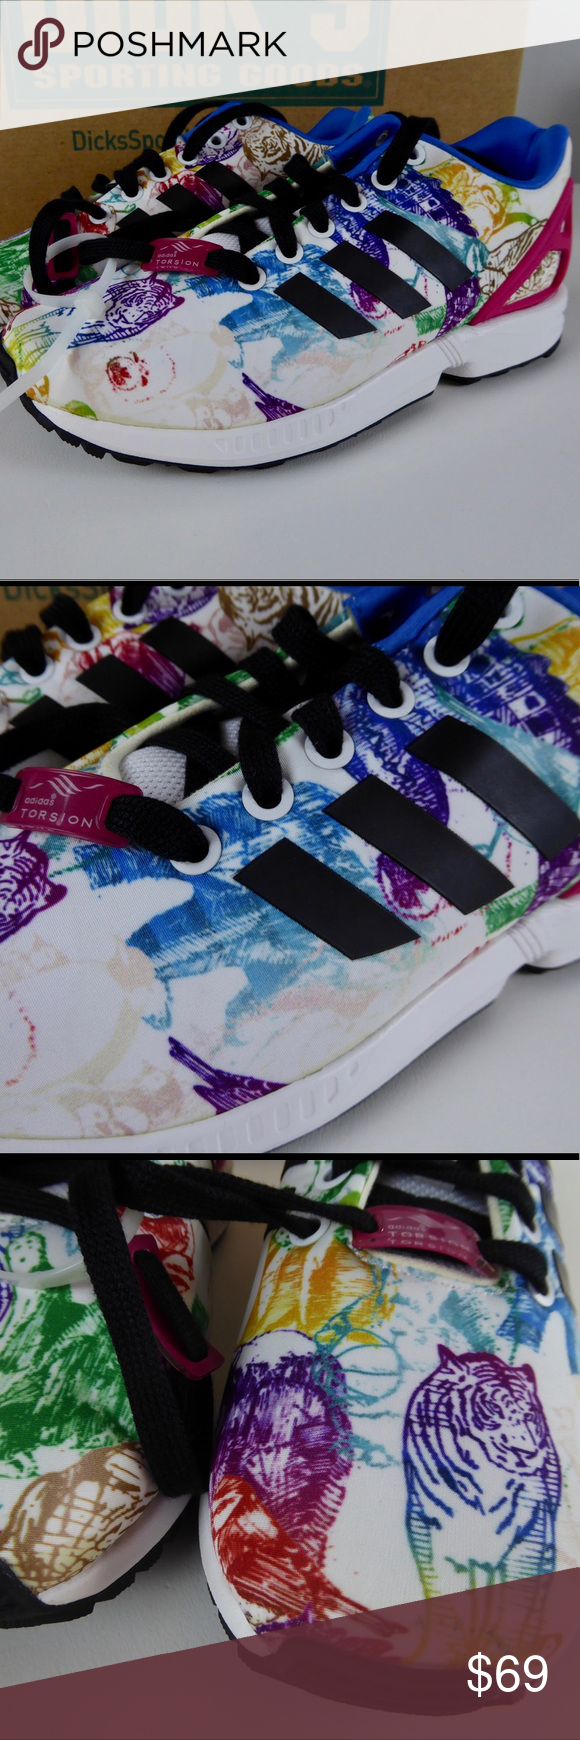 6bf5c89965c Adidas ZX Flux Artistic Sneakers Tiger Torsion NIB Adidas Sneakers  🐅Graffiti style animal print 🐅